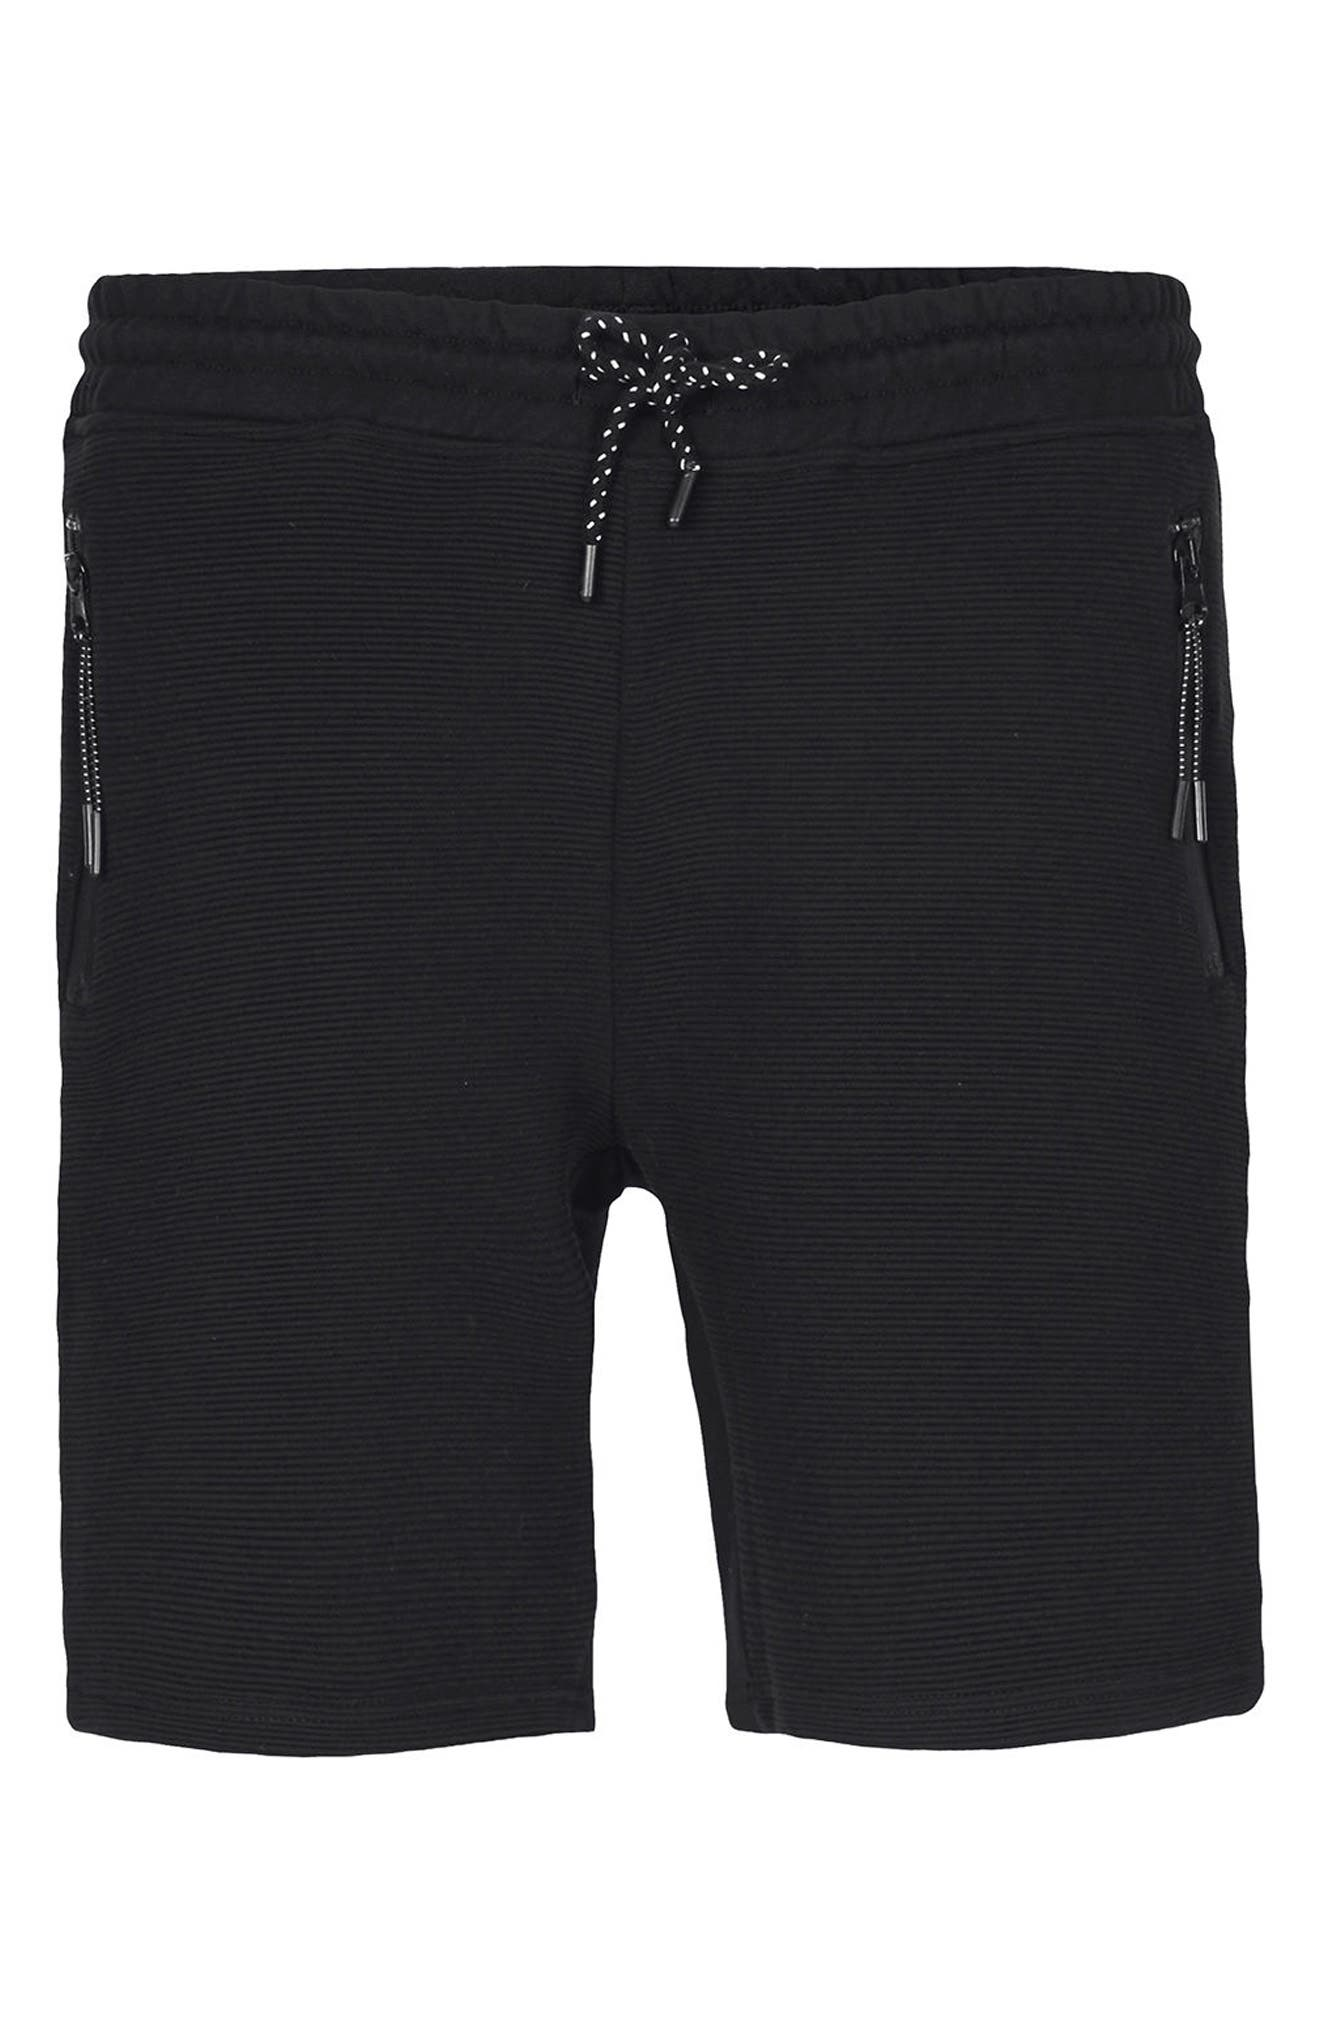 Textured Jersey Shorts,                             Alternate thumbnail 4, color,                             001